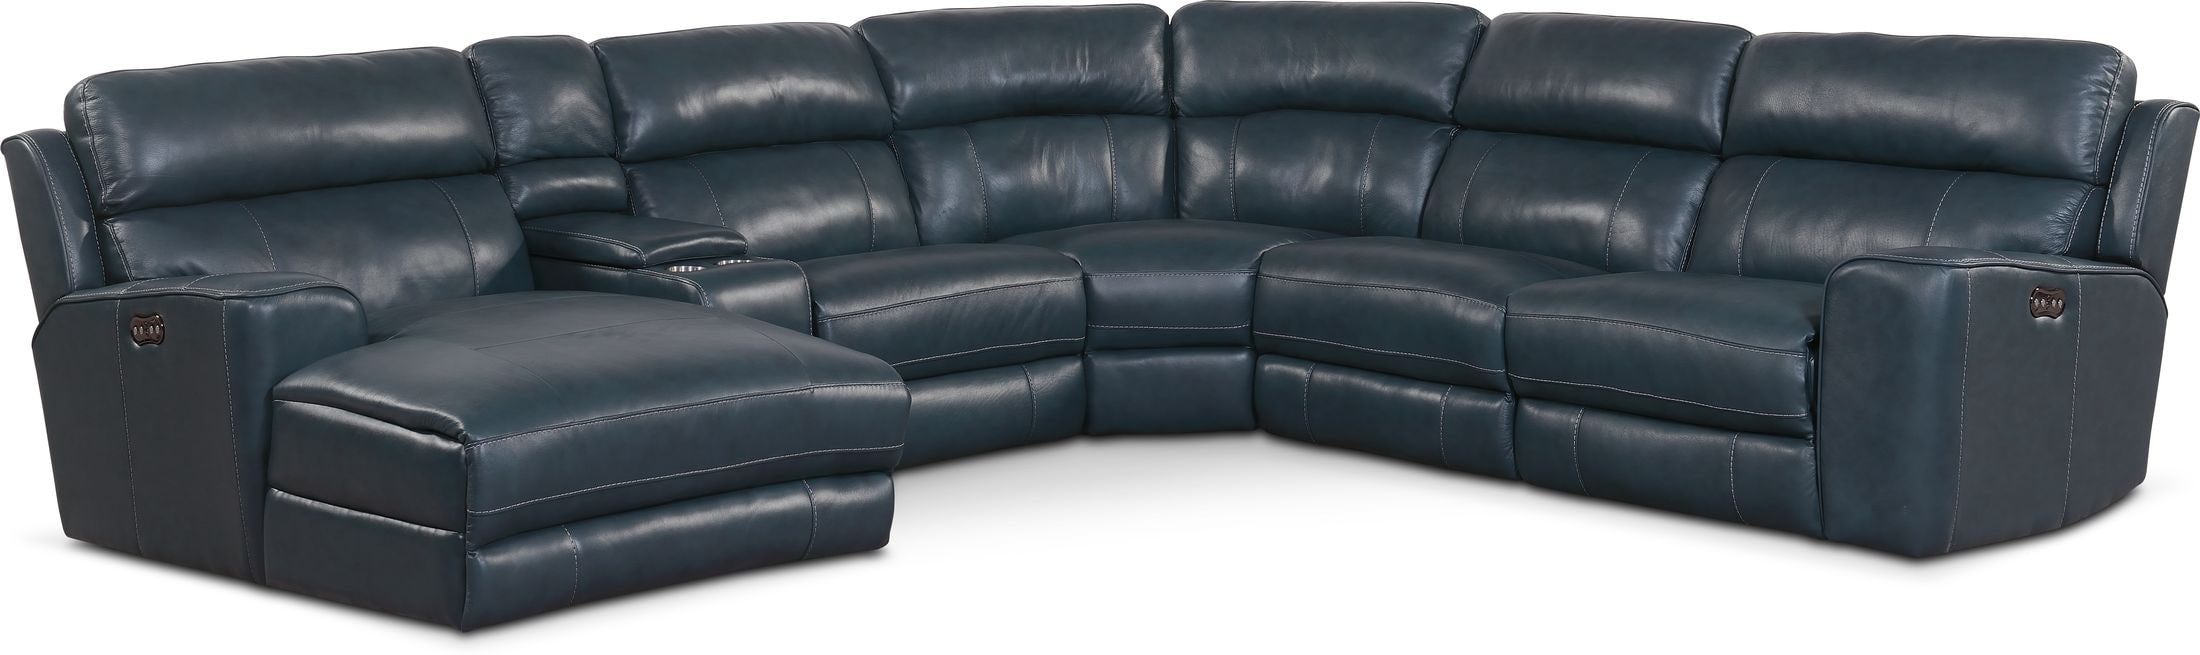 Newport 6 Piece Dual Power Reclining Sectional With Chaise For Forte Gray Power Reclining Sofas (View 9 of 15)